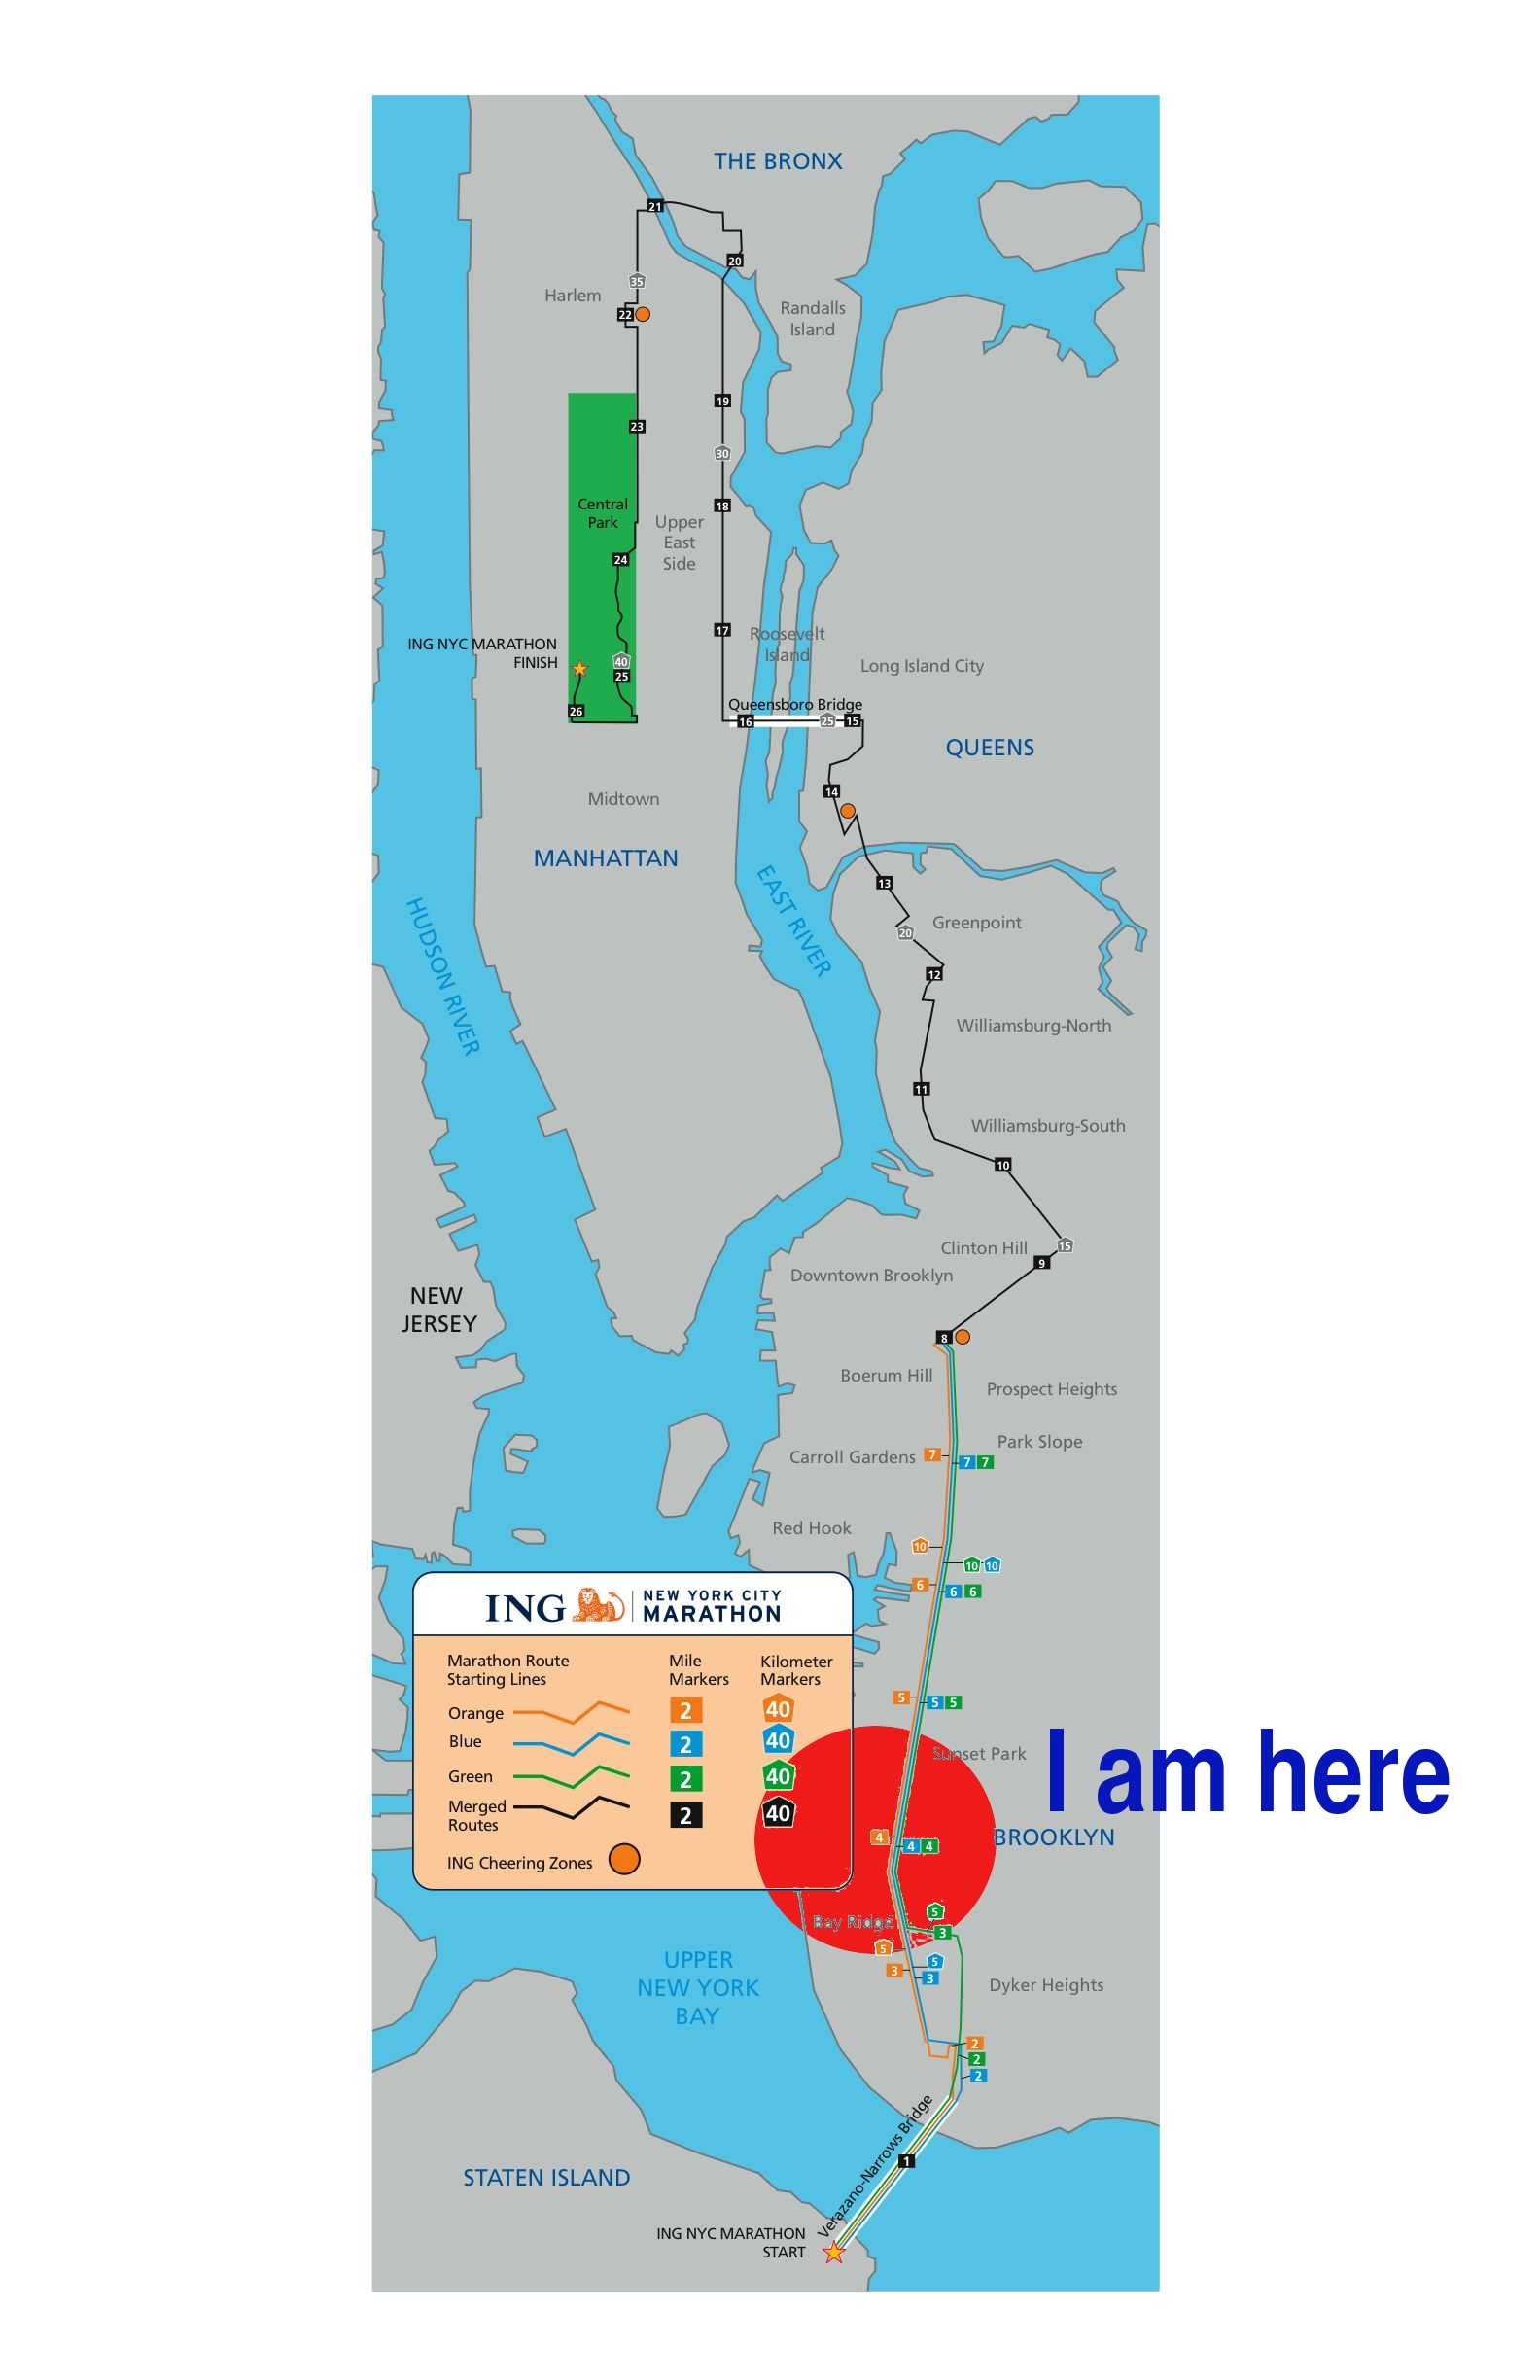 Achilles nyc marathon Analogy